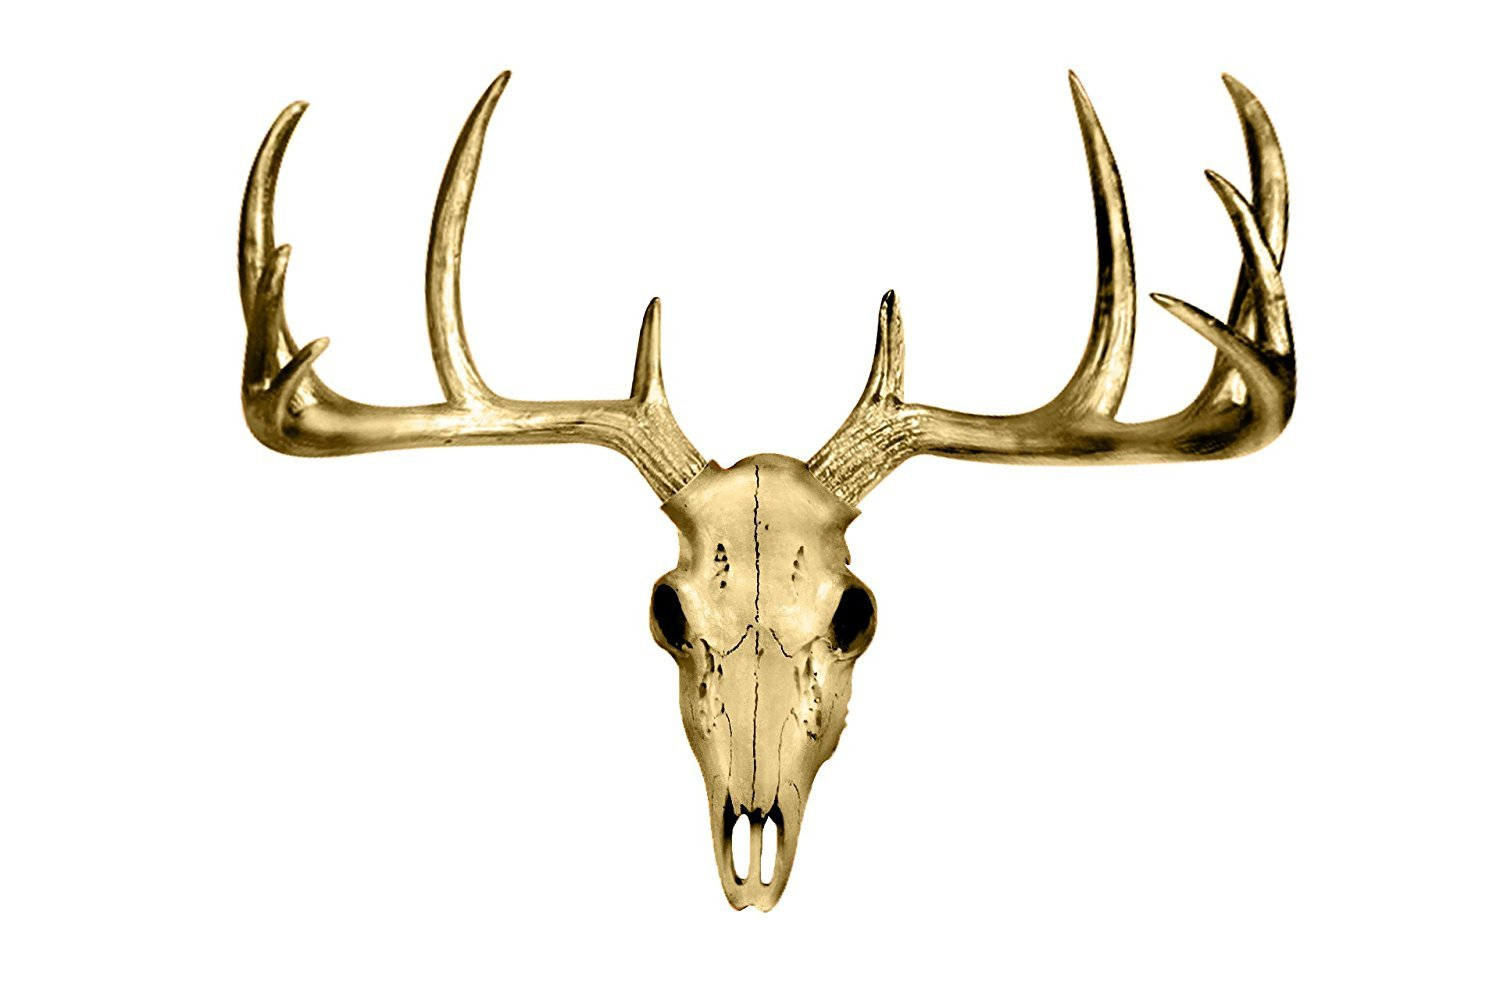 Wall Charmers Large Faux Deer Skull | Room Decor Wall Art| Hand Finished Home Decor, Farmhouse Decor, Bedroom Decor, Bathroom Decor, Office Decor, Rustic Wall Decor, Rustic Home Decor Accents